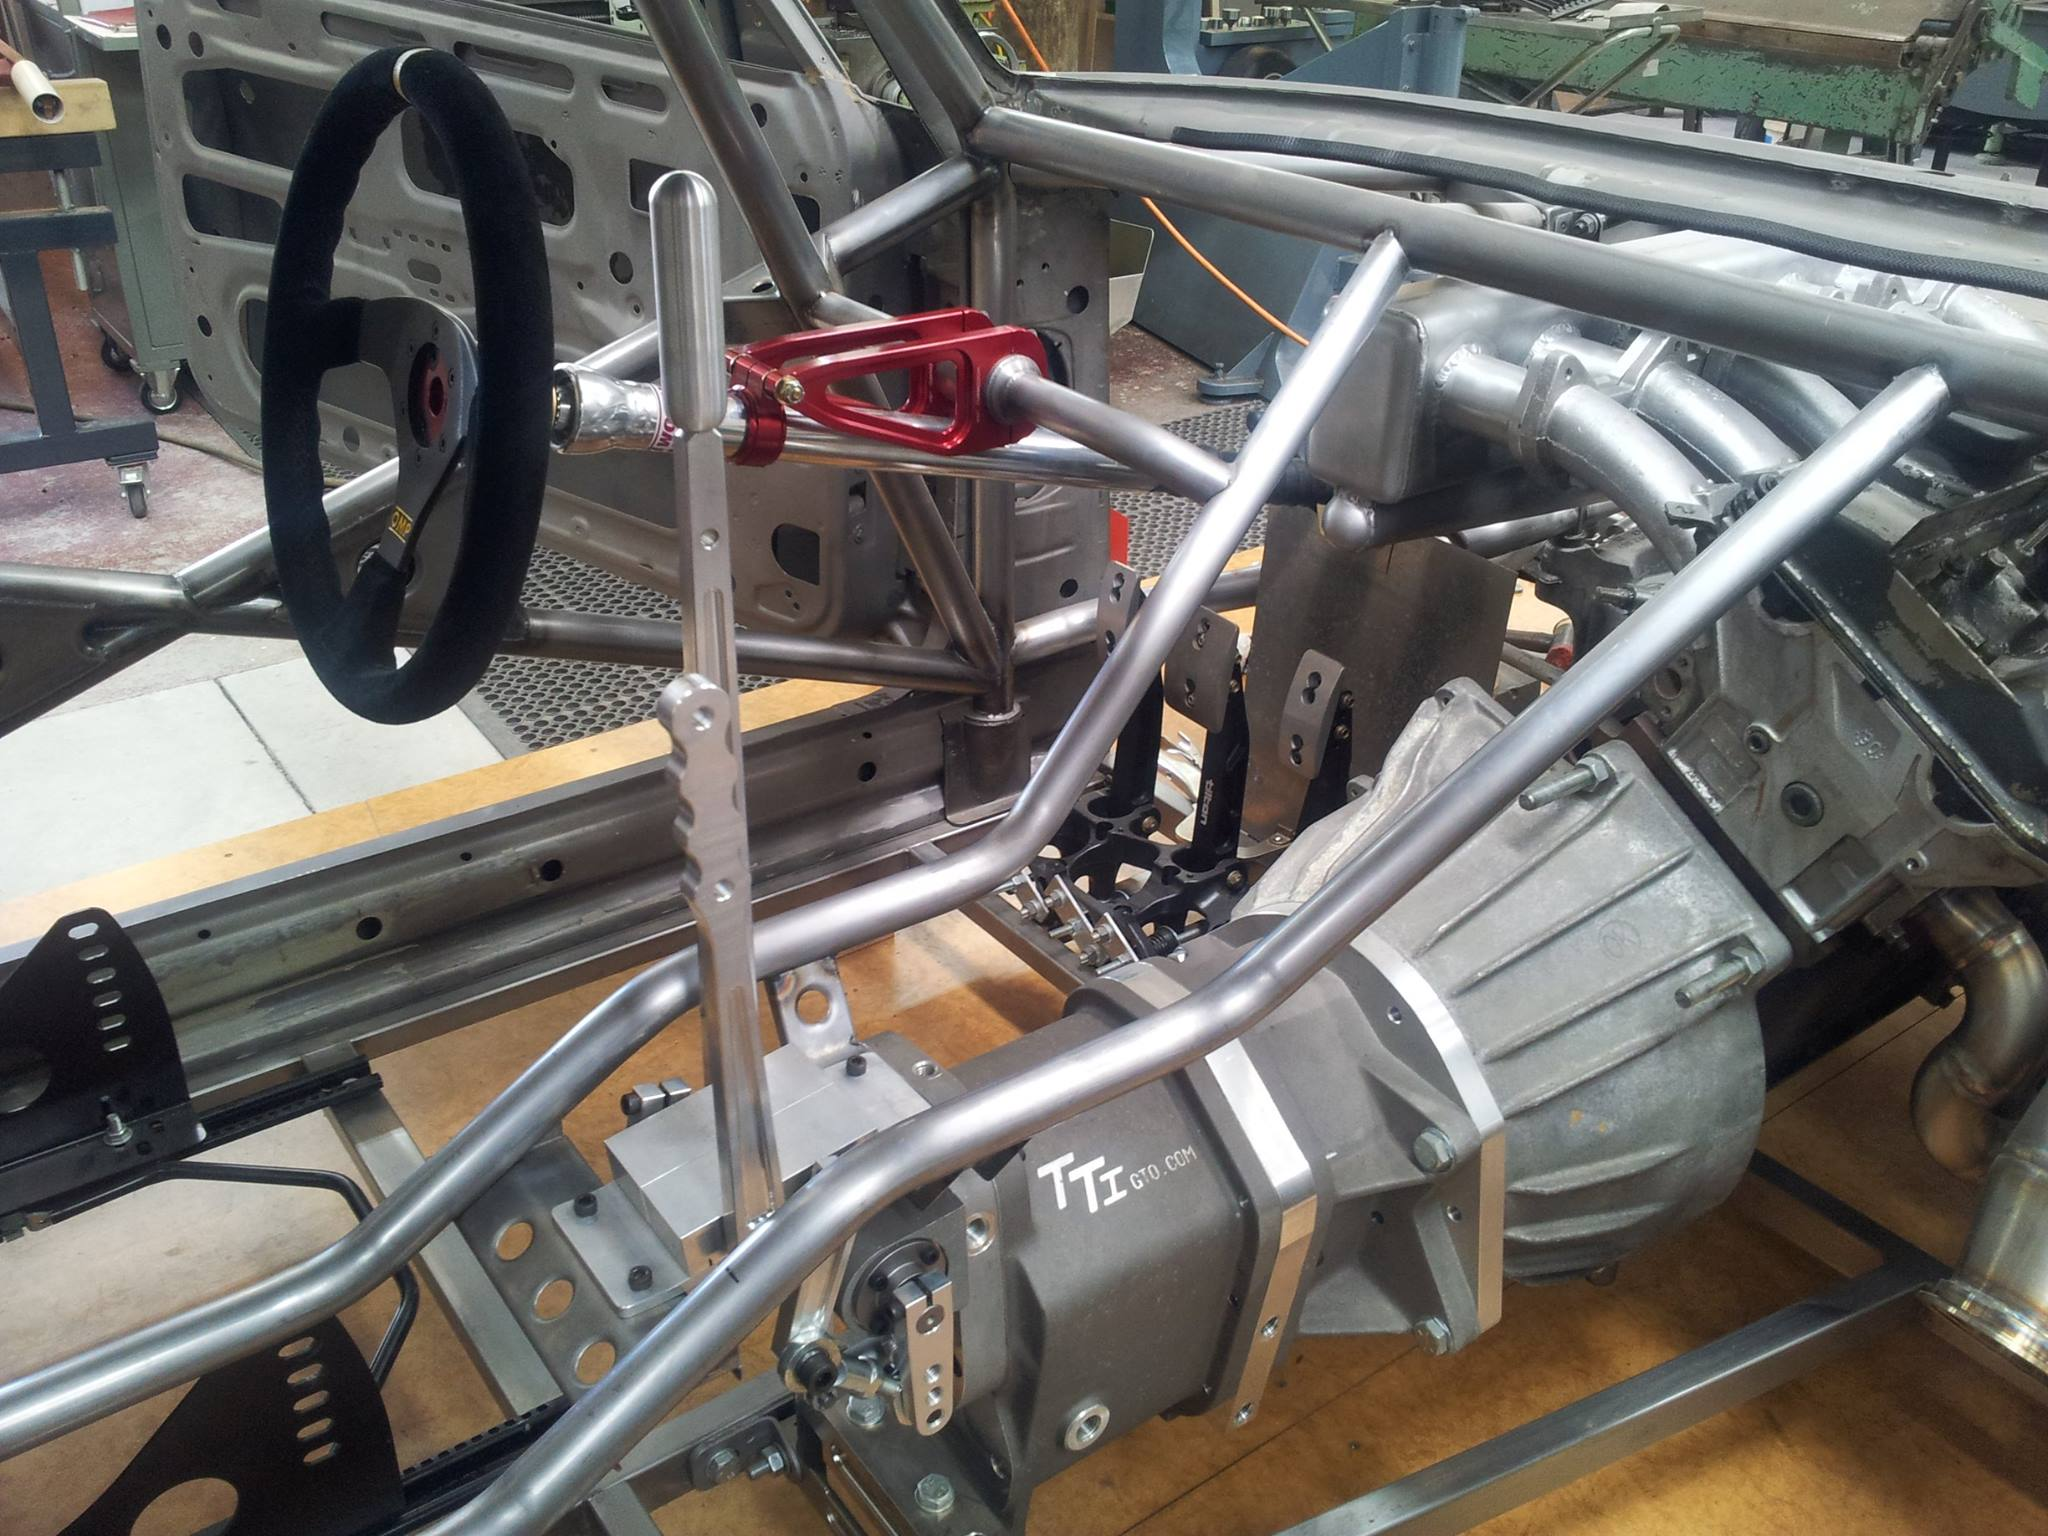 Design in addition 223 additionally Team Associated Monster Gt moreover 5 Axis Cnc Workholding Dovetail Fixture together with 49. on front motor plate